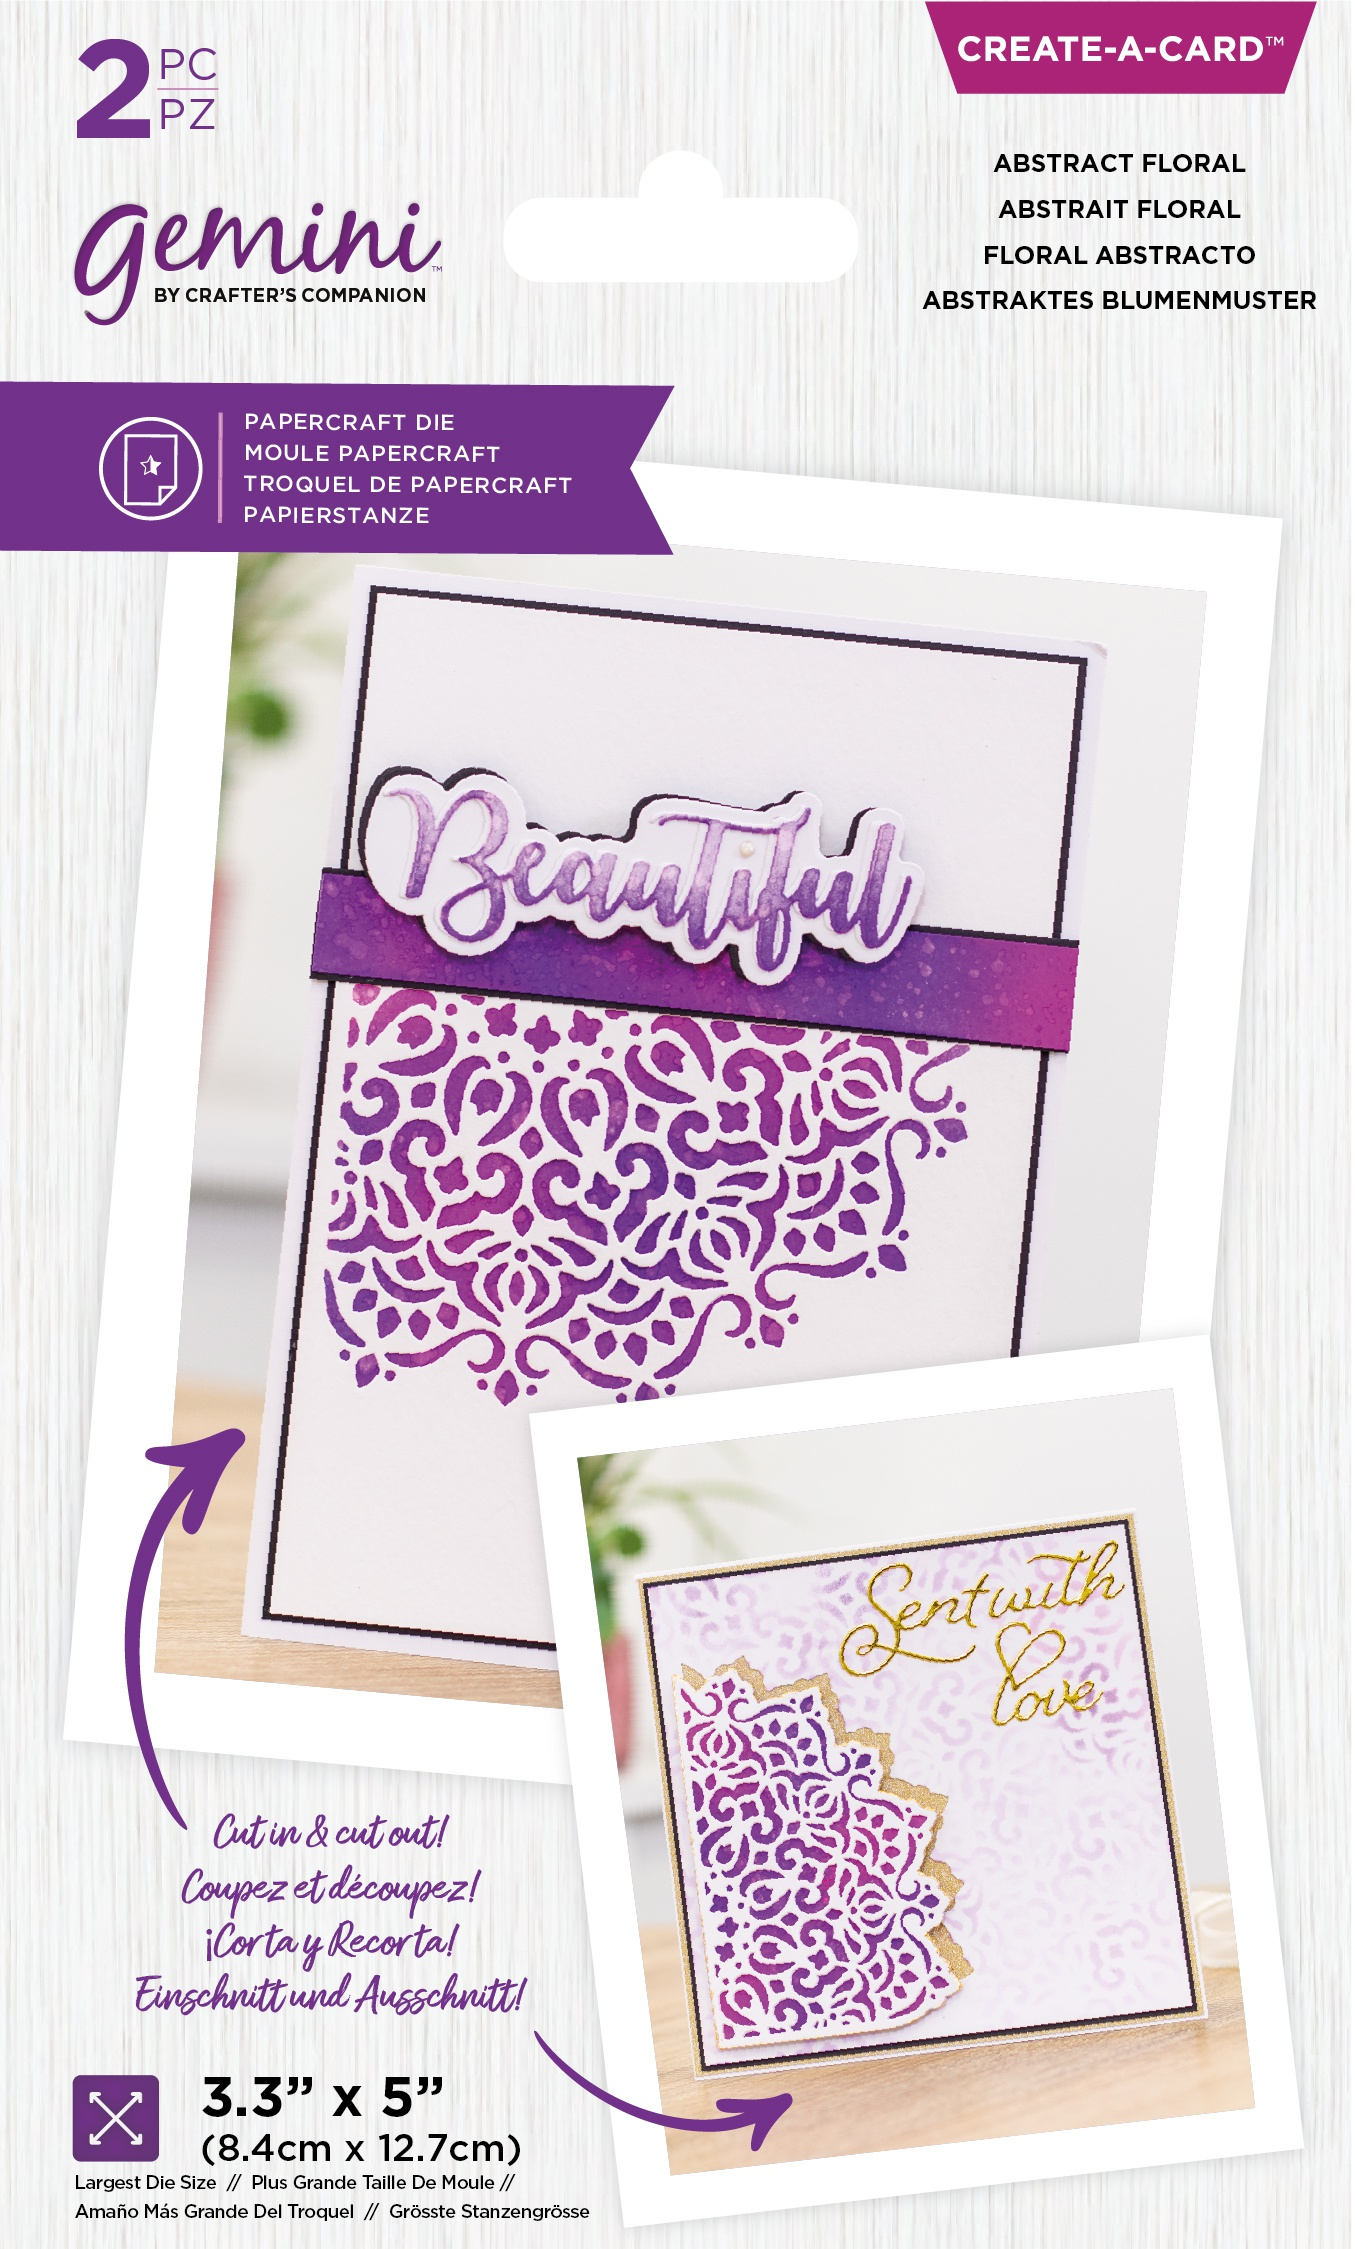 Crafter's Companion Gemini Create-A-Card Die-Abstract Floral